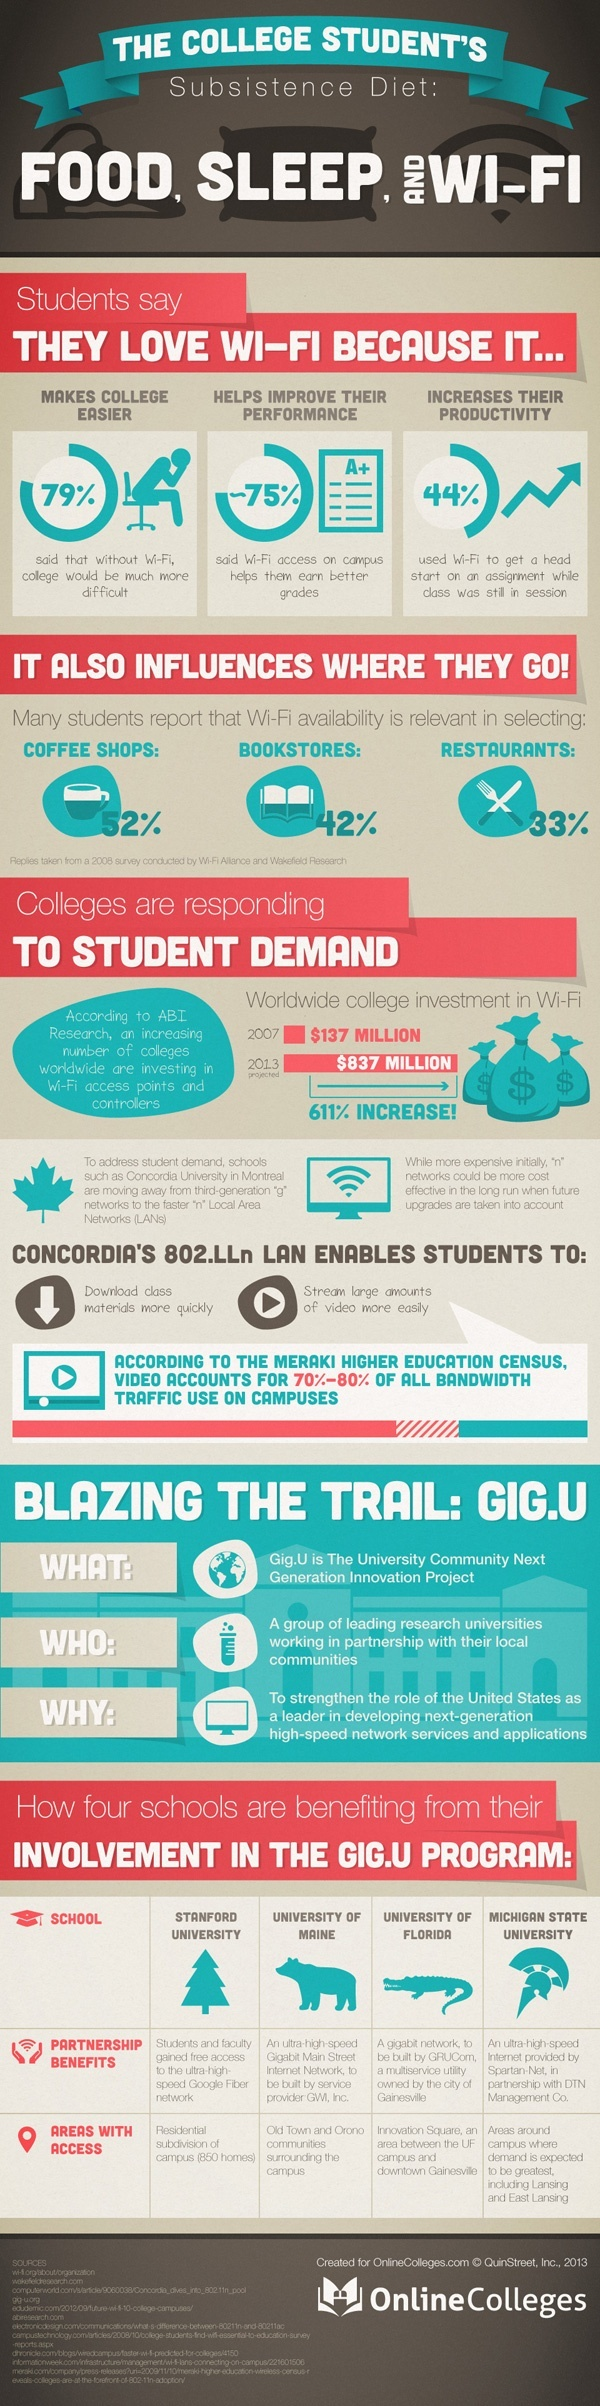 375917-infographic-college-campus-wi-fi